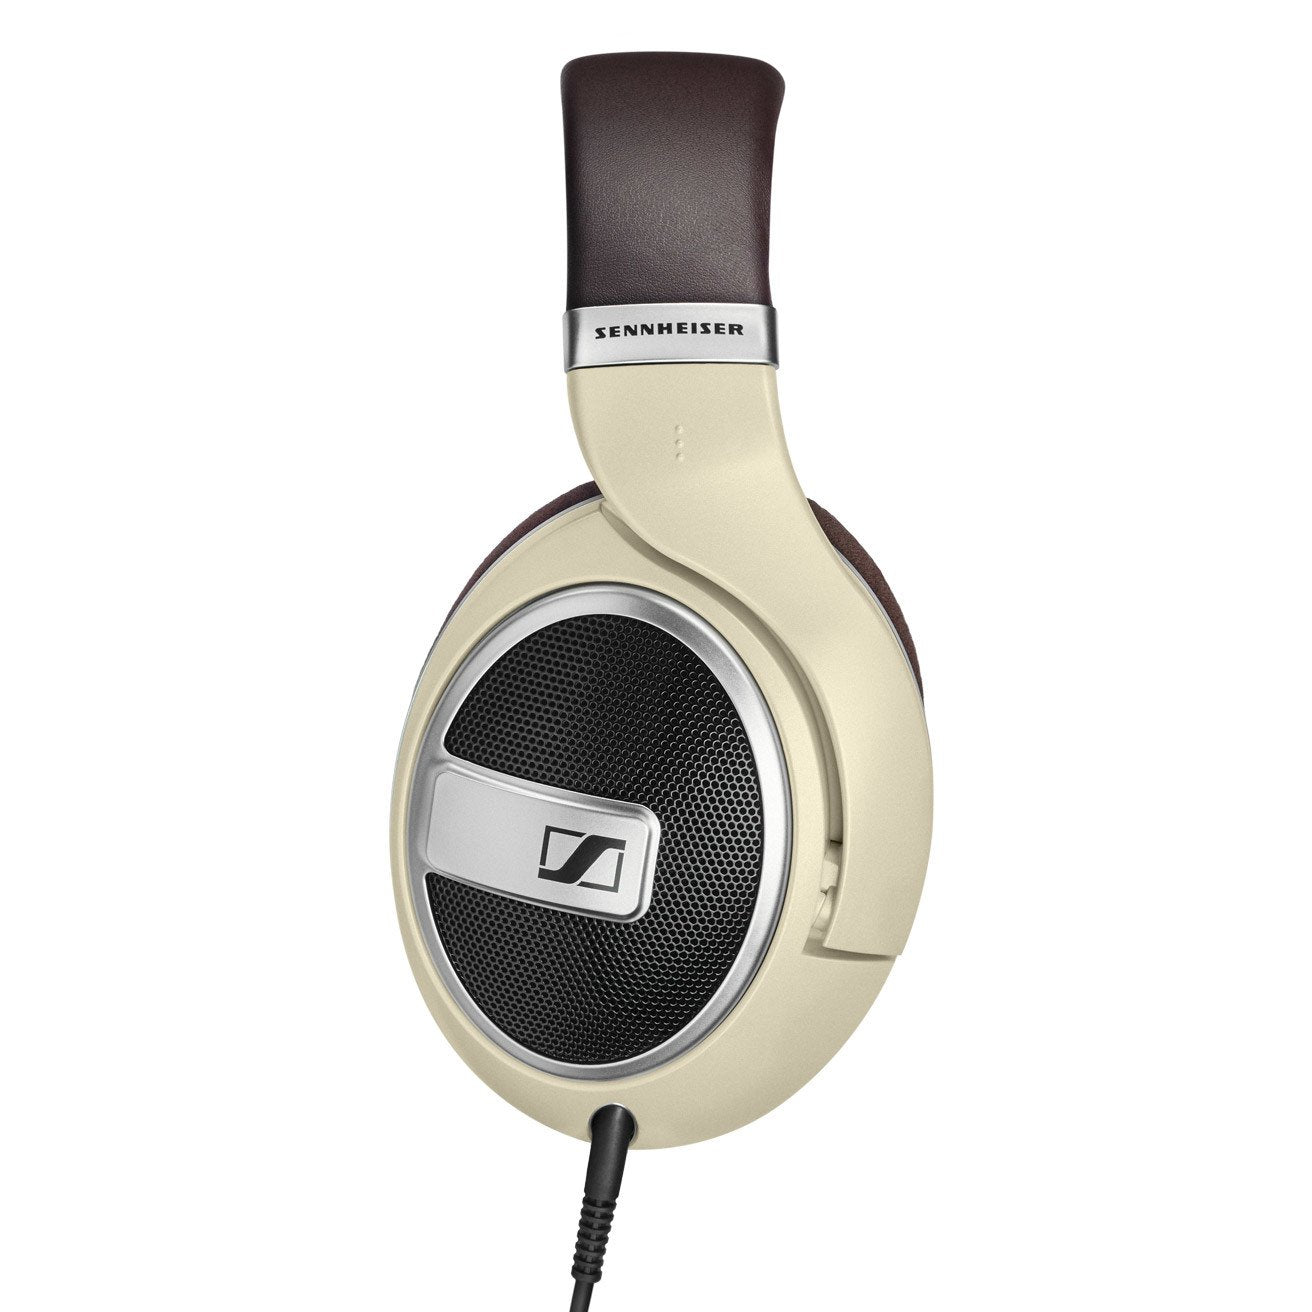 Sennheiser HD 599 - Headphone, Sennheiser, Wireless Headphones - AVStore.in